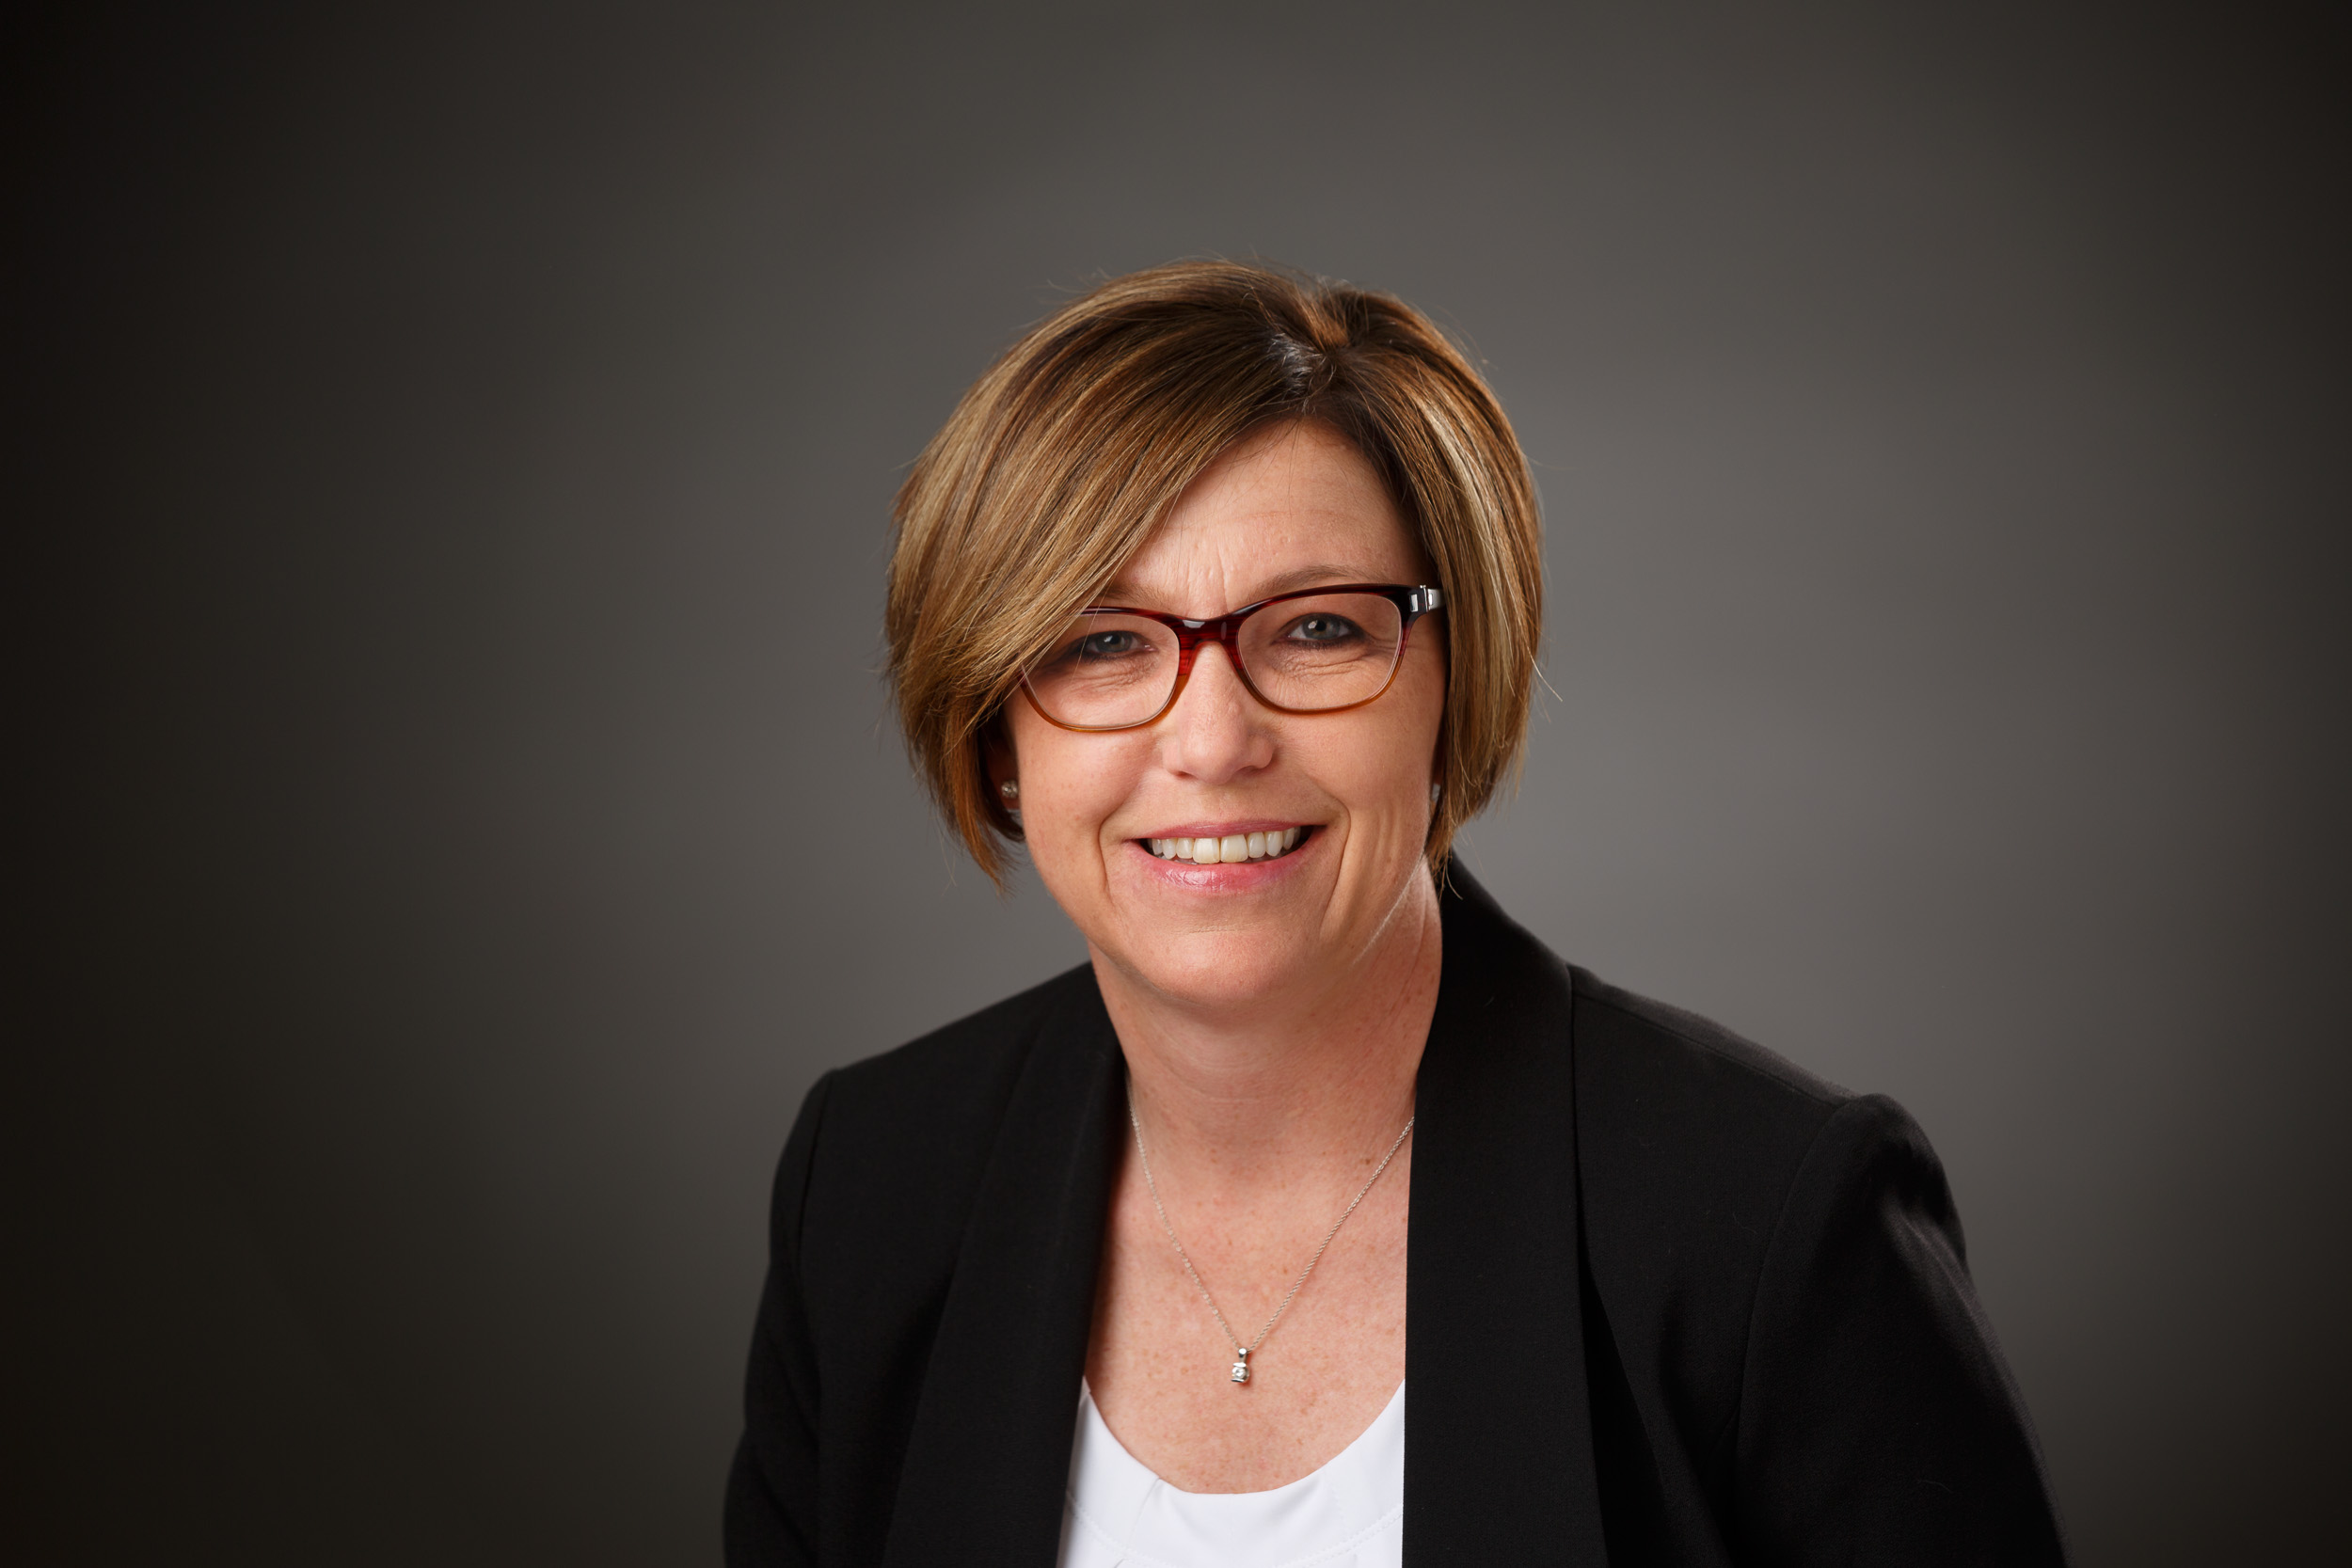 Executive Portrait of Heather Burgess, co-founder of Phillips Burgess Law Firm